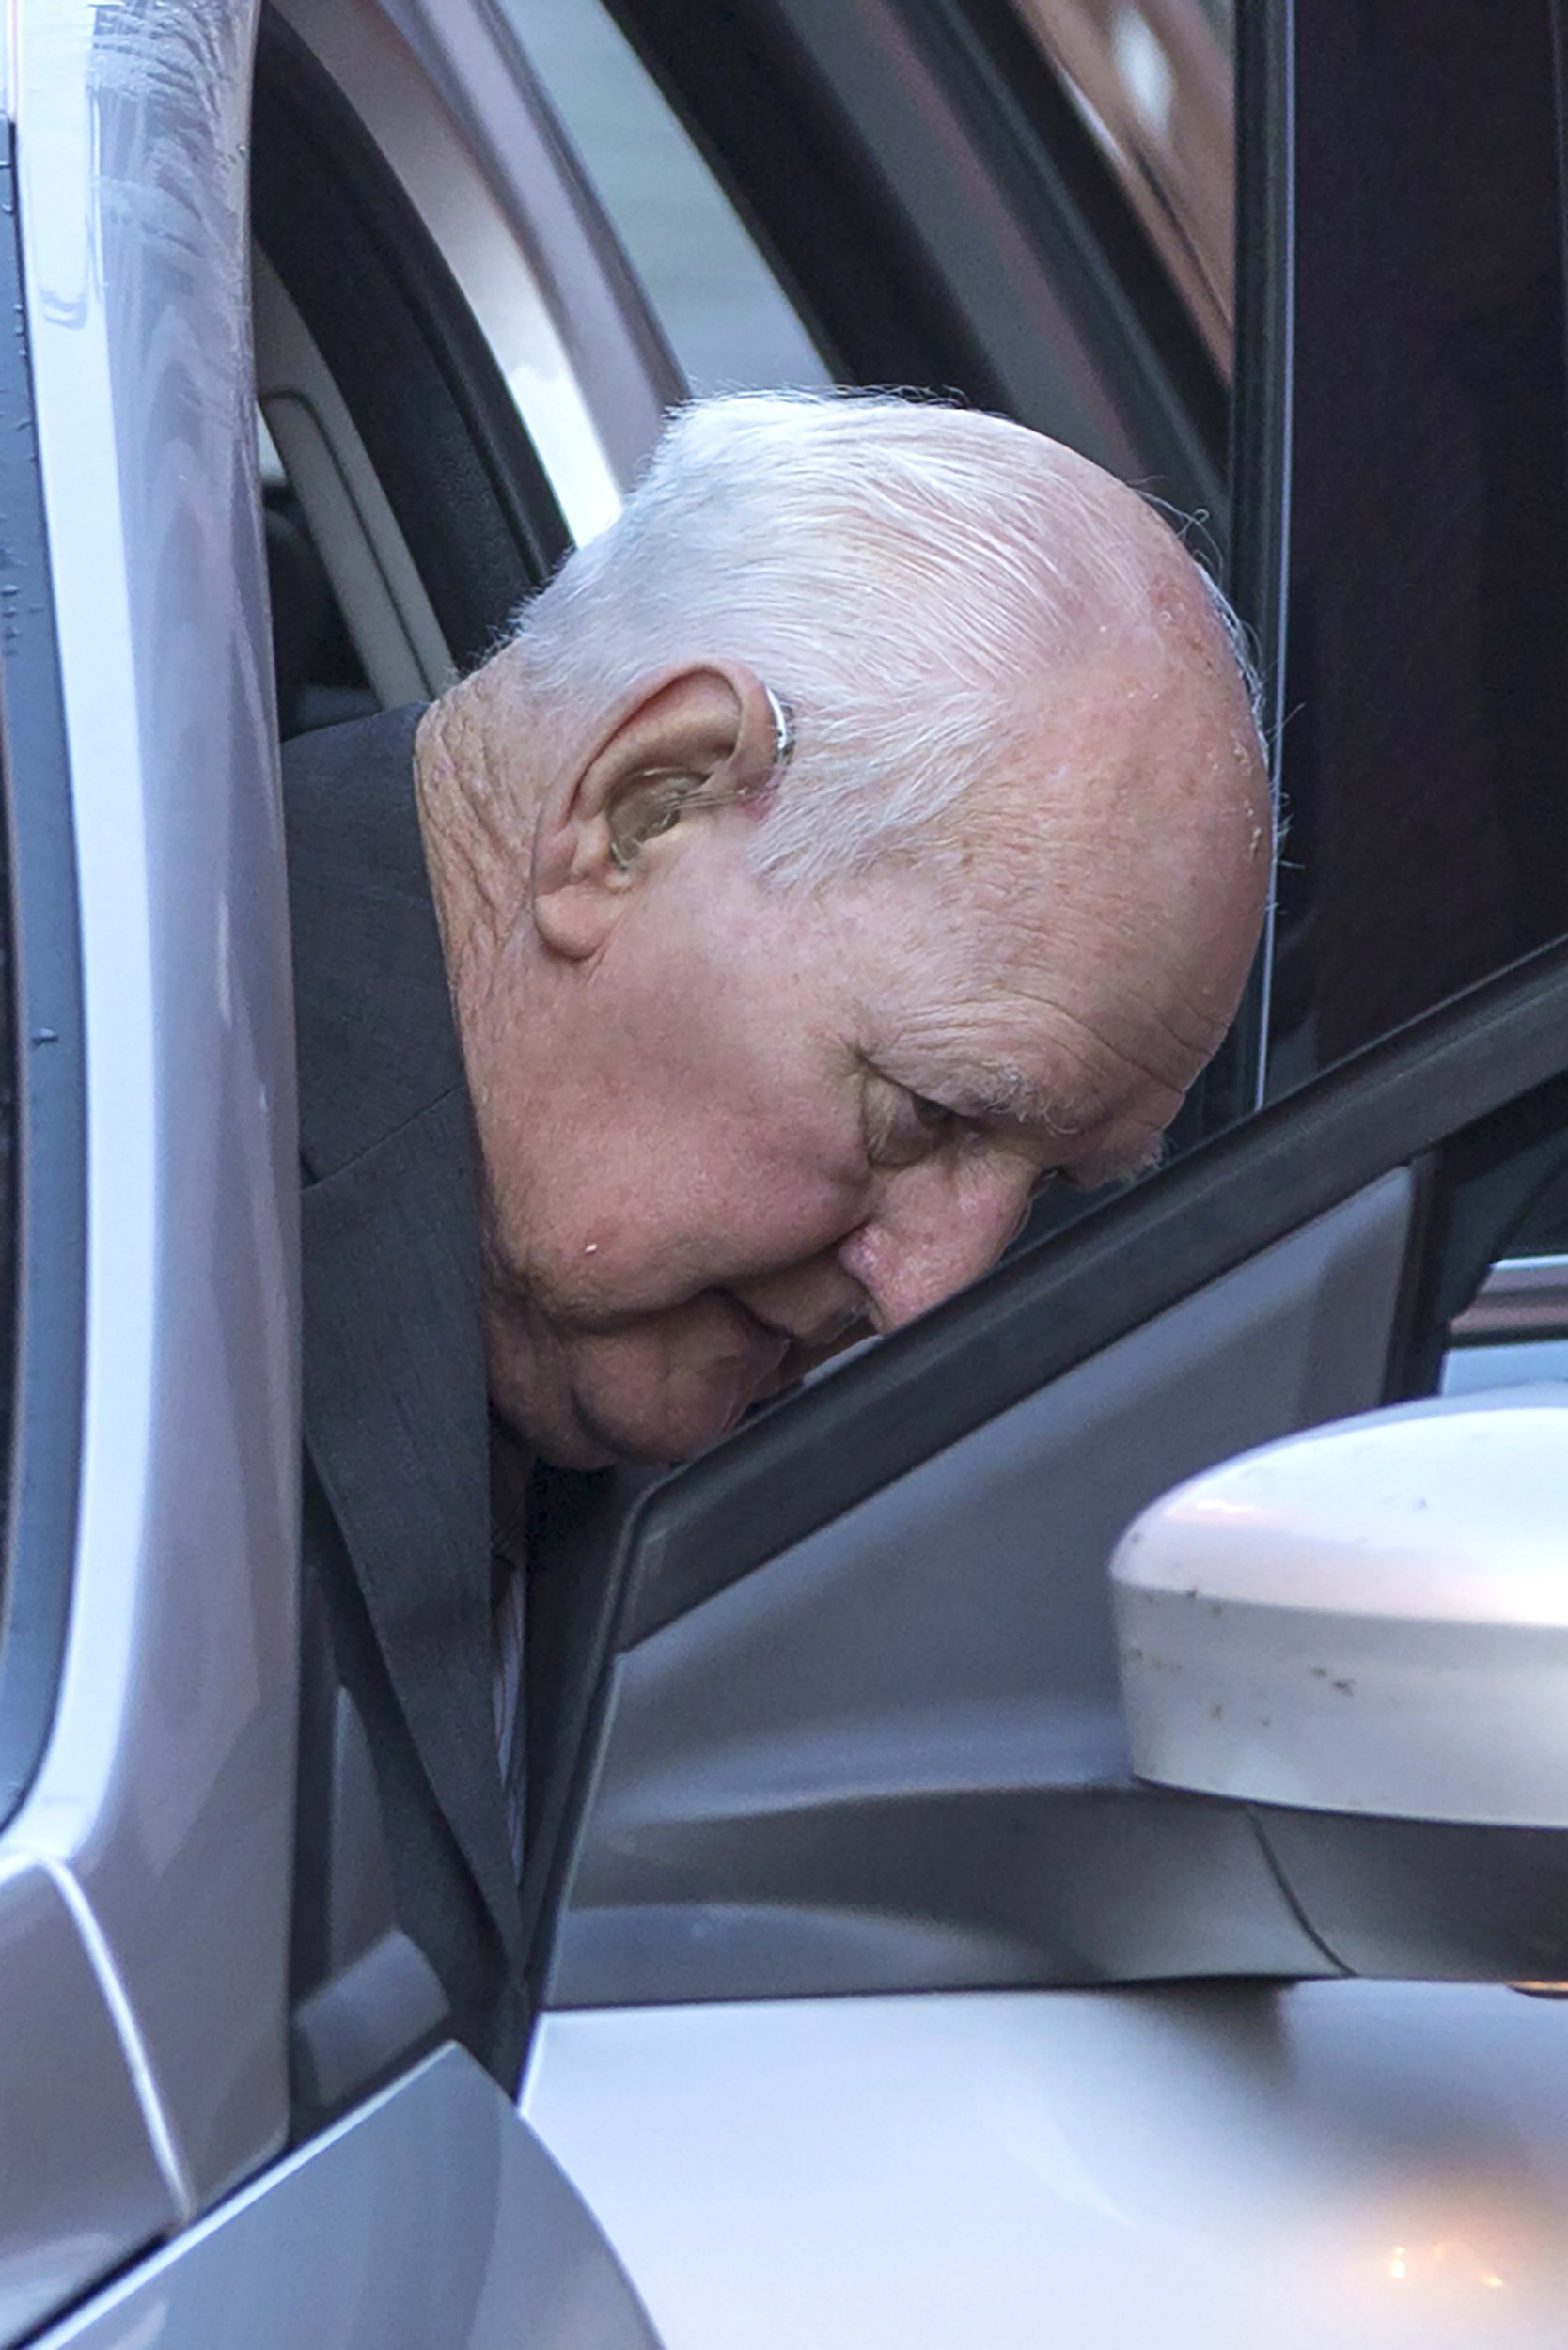 """?? Licensed to London News Pictures. 10/10/2018. Leeds UK. Former police officer 83 year old David Lomax arrives at Leeds Crown Court this morning. Lomax is accused of raping a woman in 1978 because she was unable to pay a fine. Lomax was in his 40's at the time & worked as a warrant officer with West Yorkshire Police. It is alleged that David Lomax had gone to the woman's address two weeks before the alleged offence to collect payment but had agreed to give her extra time to find the money. He then allegedly returned to on the 20th October but the woman was still unable to pay. The court heard Mr Lomax had told the woman he would have to take her to the police station but then put his hand on her shoulder and said: """"Well we could solve this."""" He then allegedly led the woman into her bedroom & raped her against a wall before leaving. The court heard the woman reported it to police several days later and a DNA sample was retrieved from a towel. Jurors at Leeds Crown Court were told Mr Lomax, was charged after his DNA profile was matched in a cold case review in 2016. Photo credit: Andrew McCaren/LNP"""